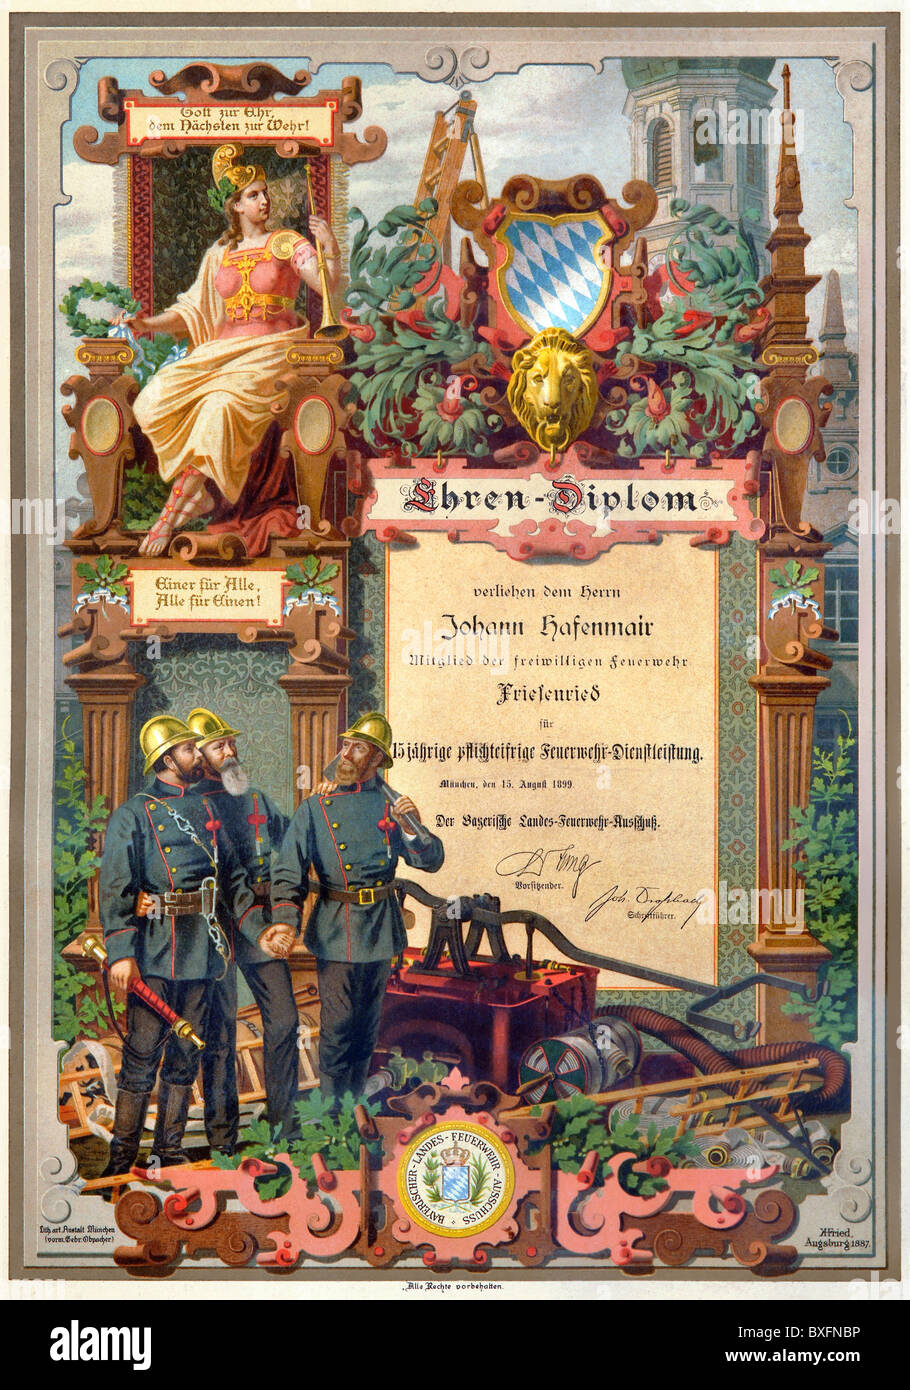 documents honorary diploma for johann hafenmair member of the  documents honorary diploma for johann hafenmair member of the auxiliary fire brigade friesenried bavaria lithograp